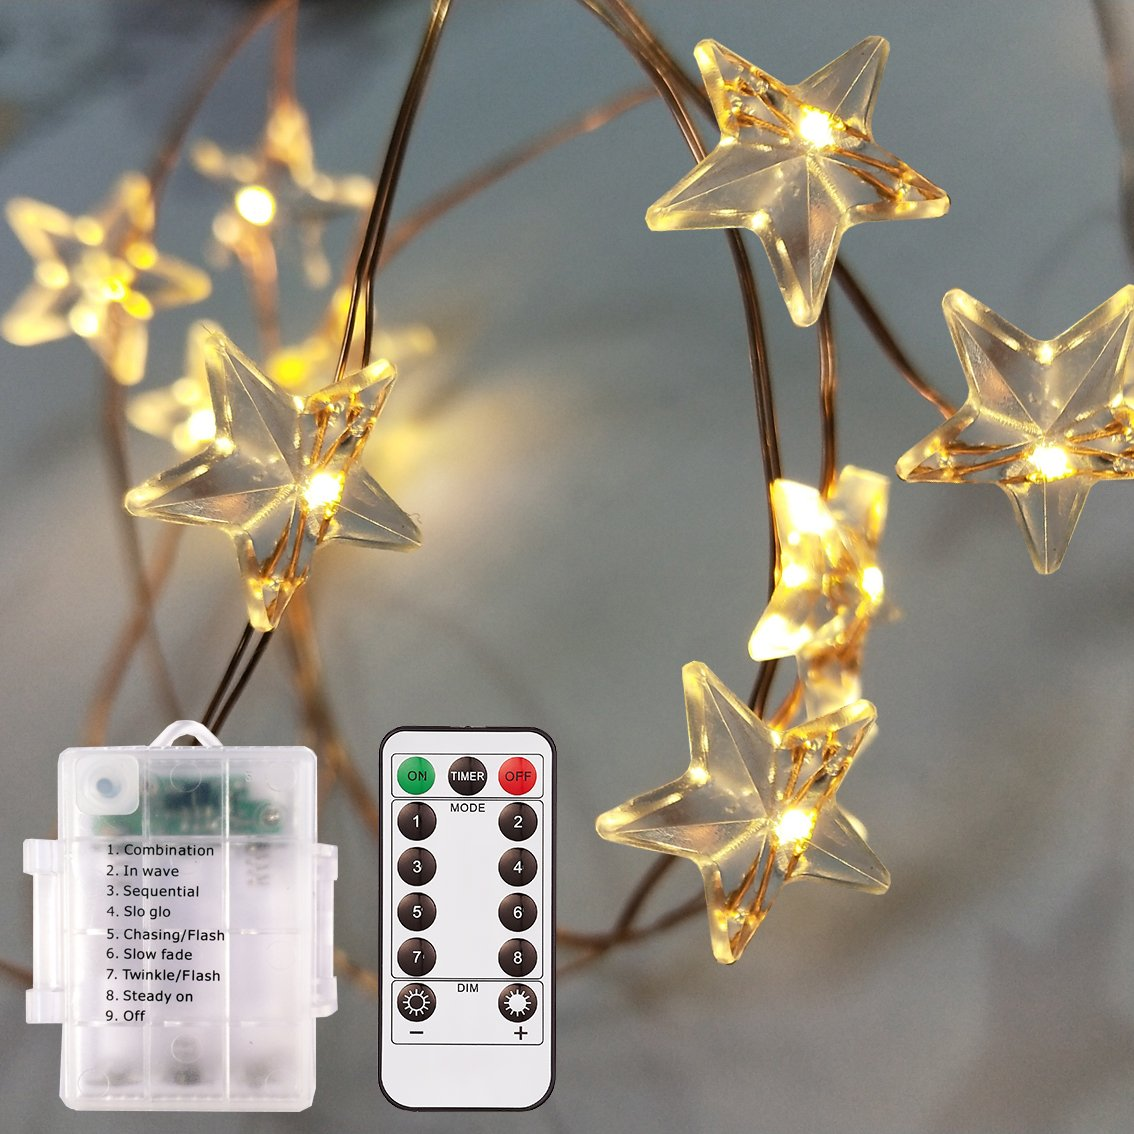 Outdoor Battery Operated String Lightsstar Shaped 8 Model Remote Garden Timer With Control Dimmable Waterproof 40 Leds14ft Rope Twinkling Fairy Lights For Bedroomgarden